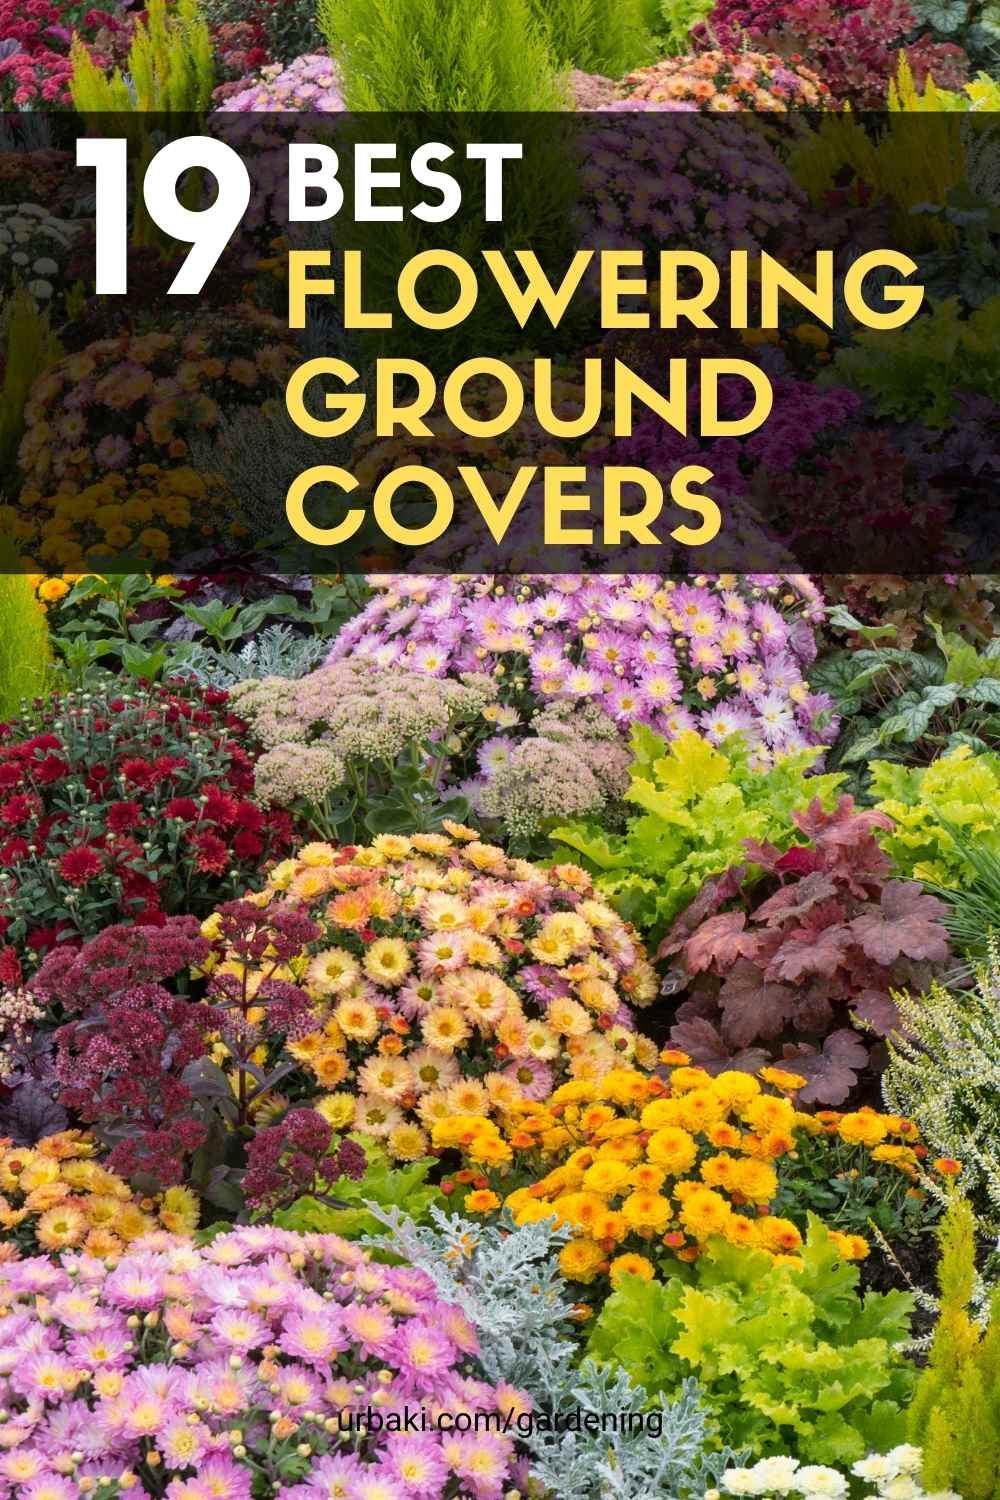 Flowering Ground Covers